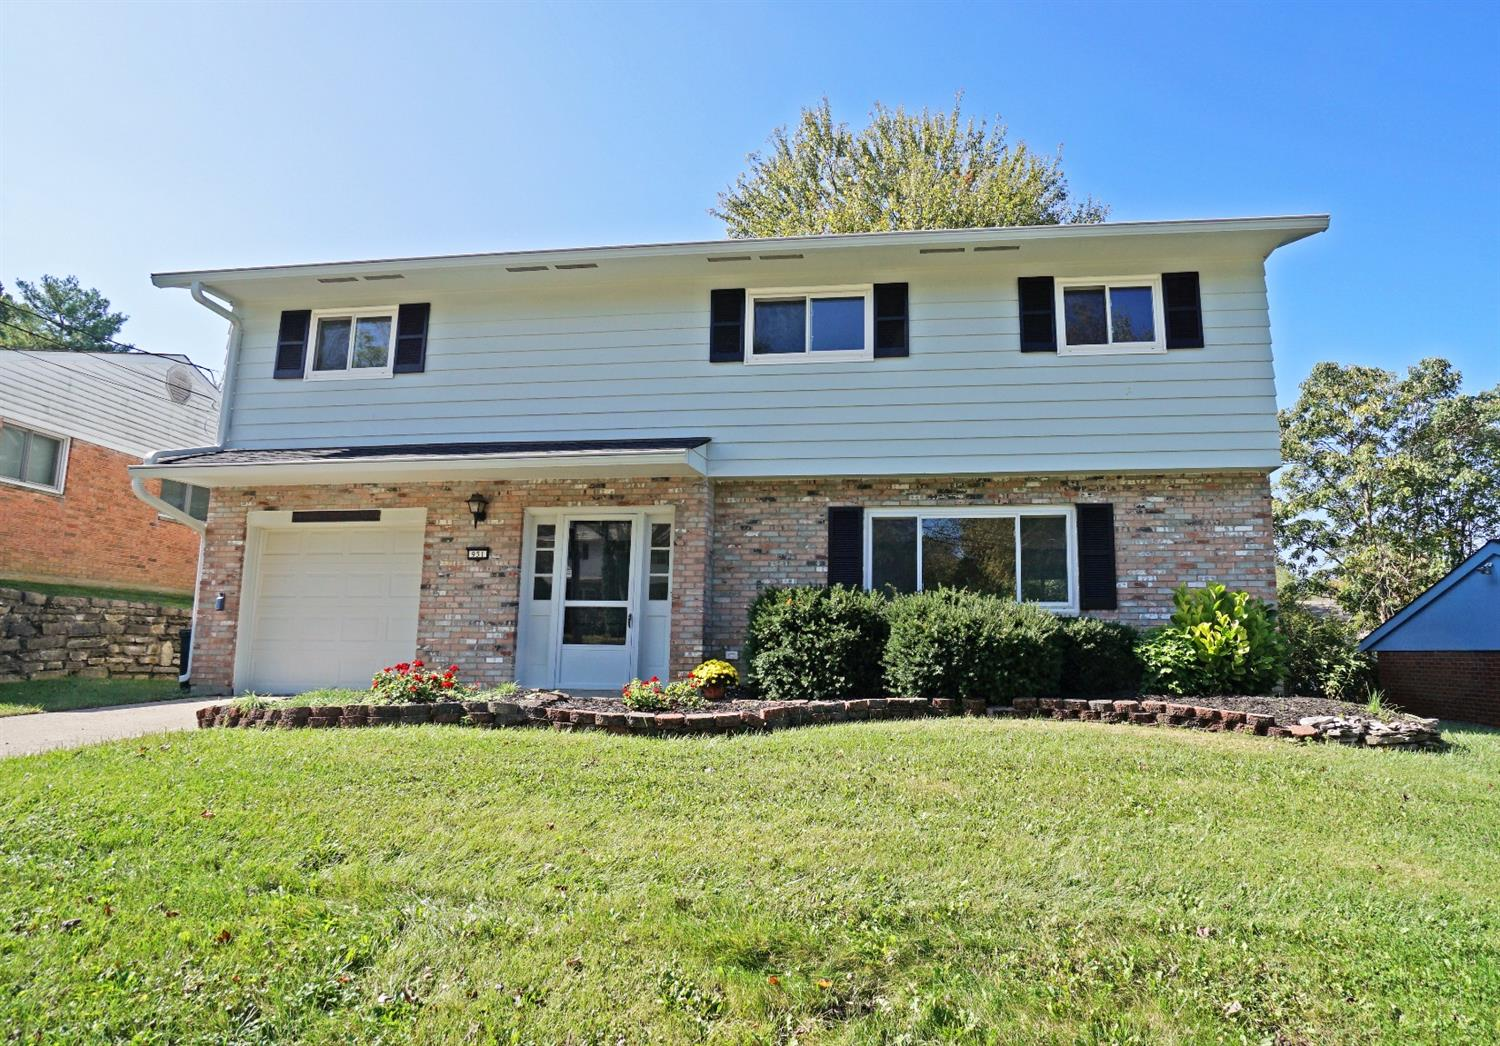 Move in ready with great updates. Freshly painted in & out! Dining room walks out to patio, completely updated kitchen, master bedroom with bath & dressing area, spacious rooms w/tons of storage & closet space, bnew roof & so much more.